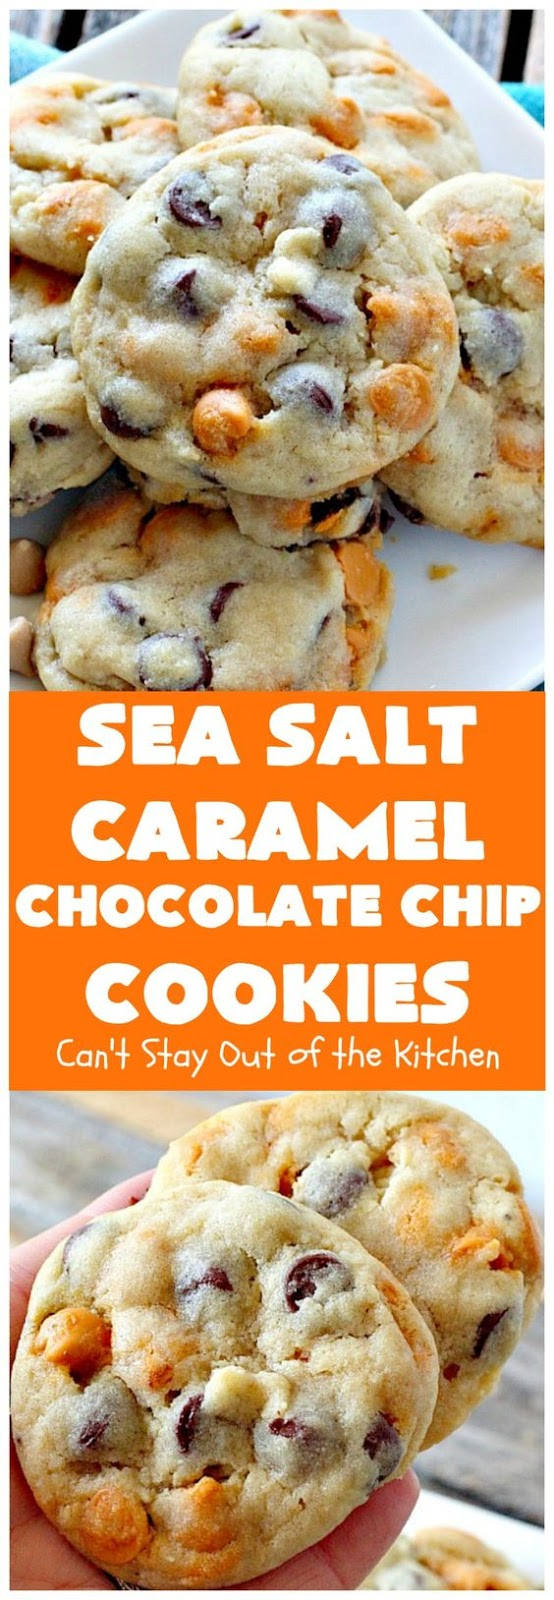 Sea Salt Caramel Chocolate Chip Cookies #seasalt #caramel #chocolate #chocolatechip #cookies #cookierecipes #easycookierecipes